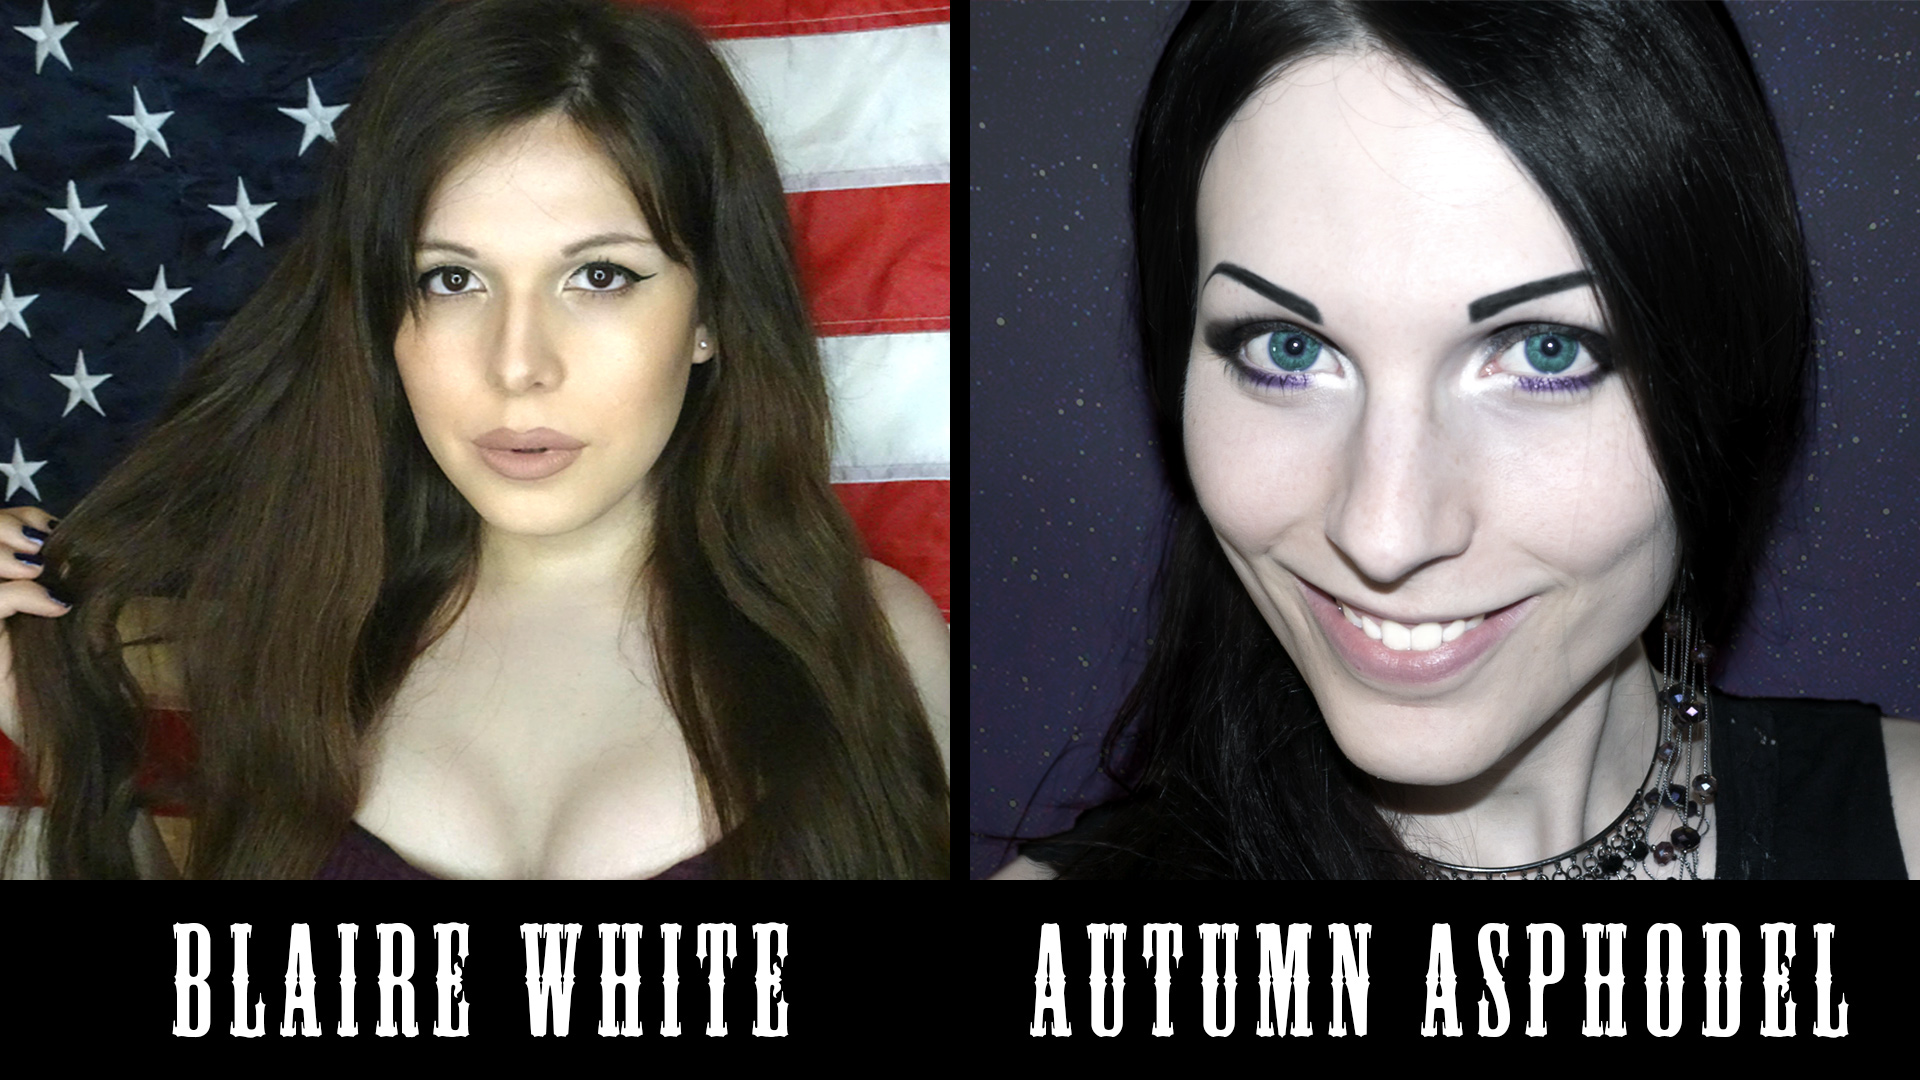 Blaire White & Autumn Asphodel | Transgender, Political Correctness, Cause and Effect